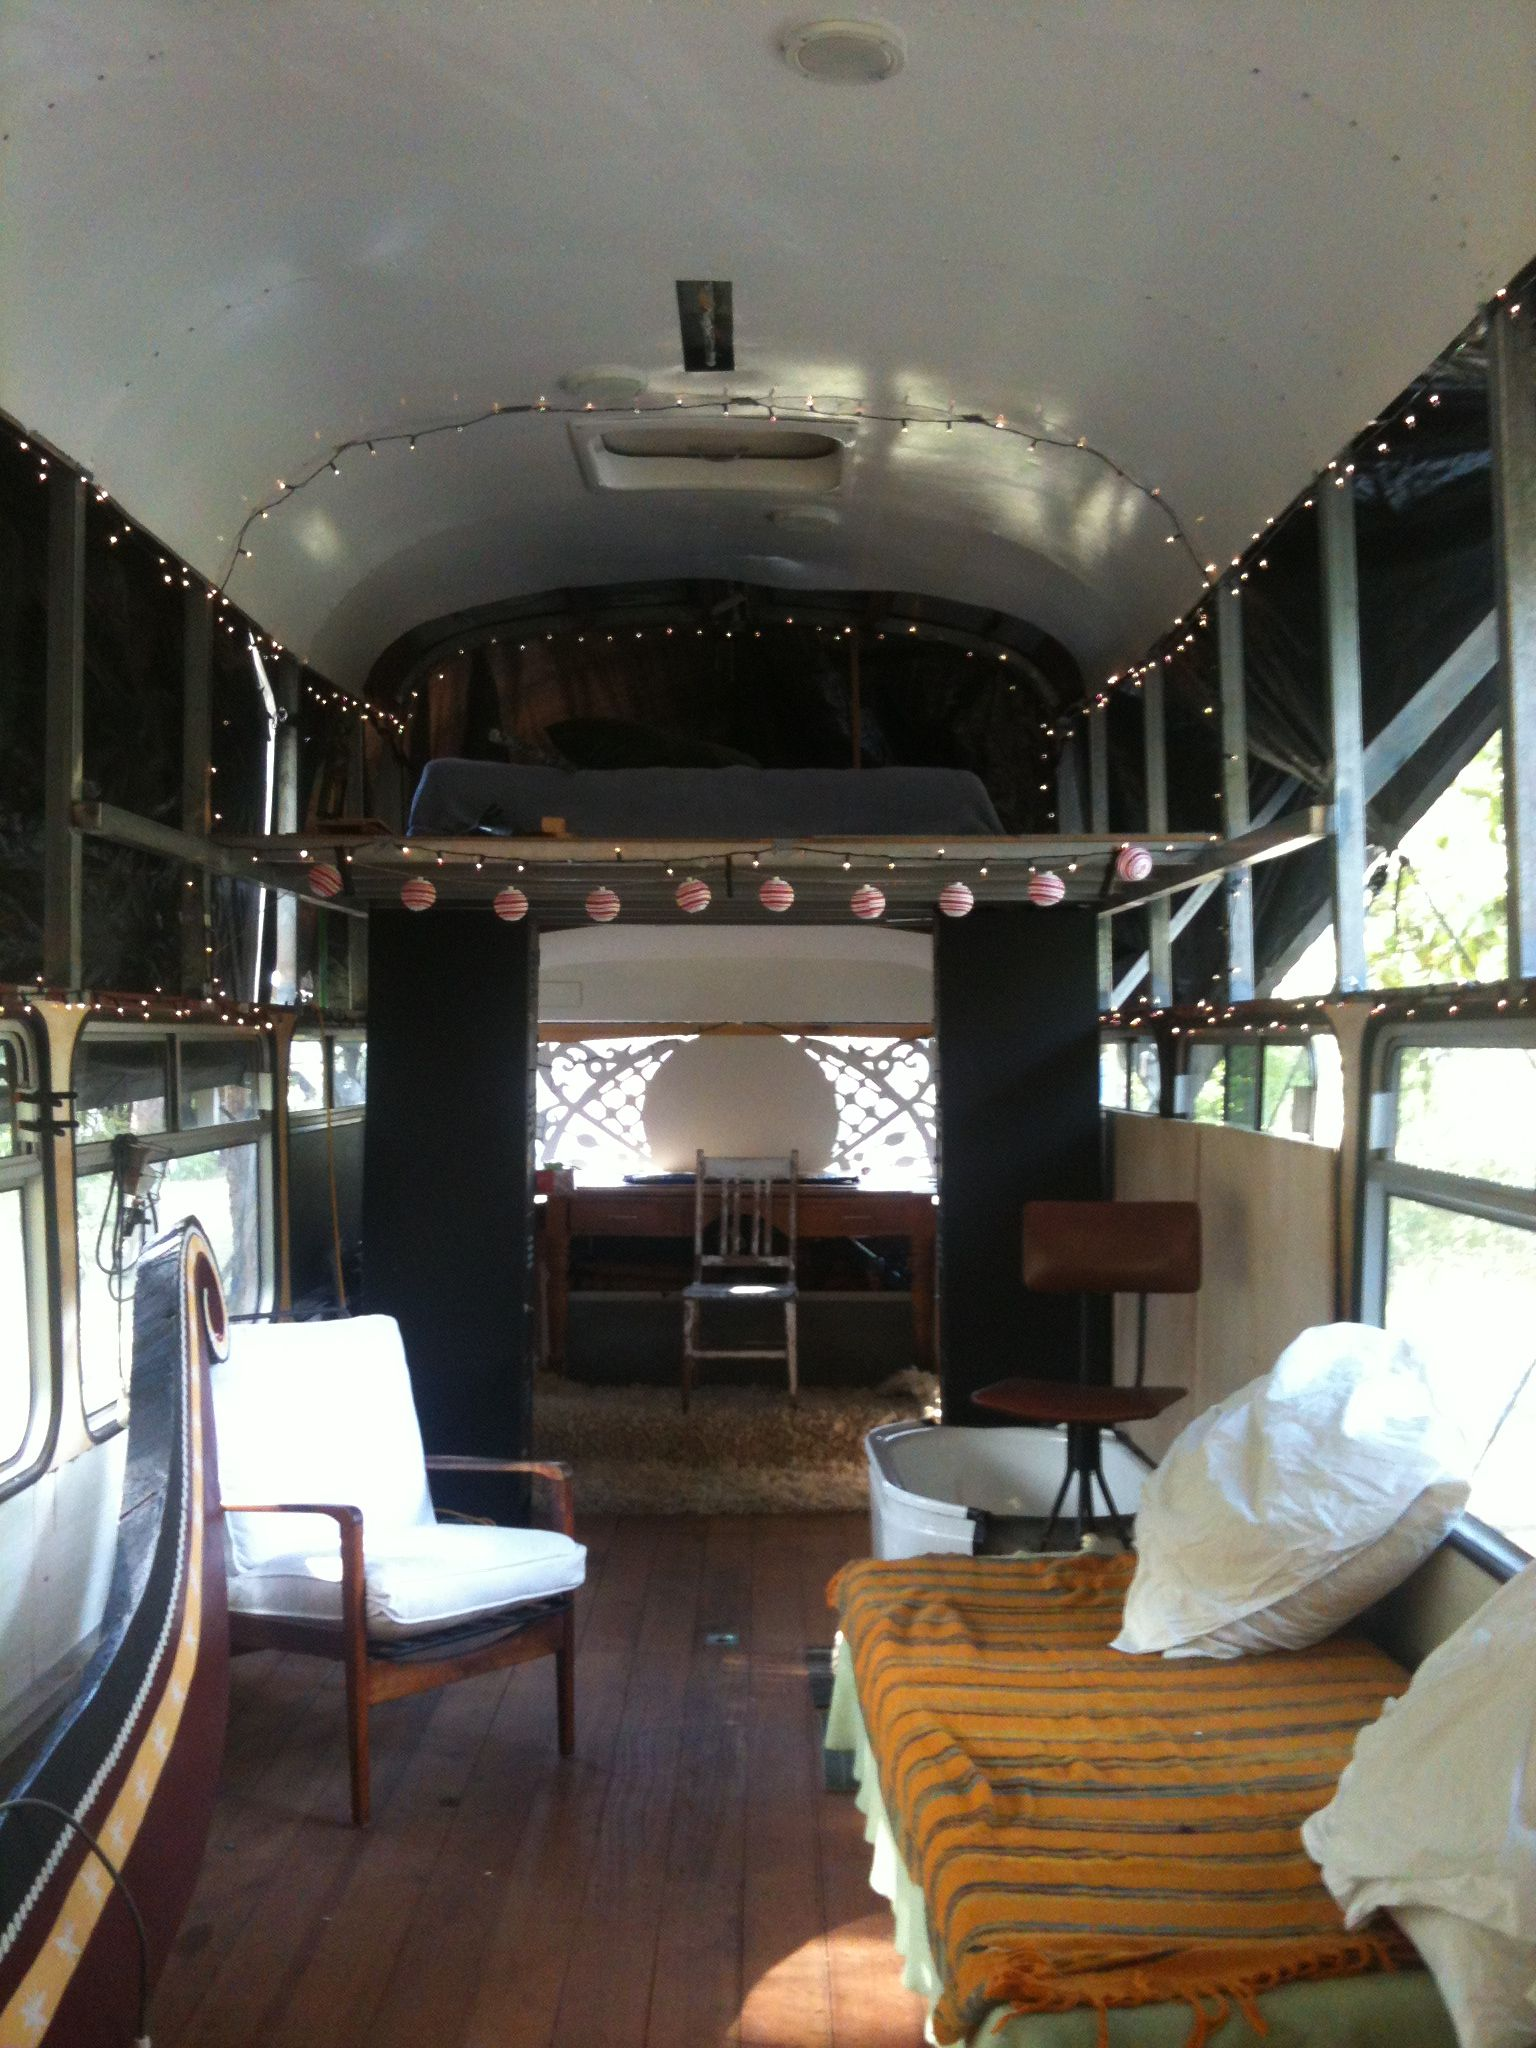 Other end of Bus and Bedroom mezzanine. Furniture and